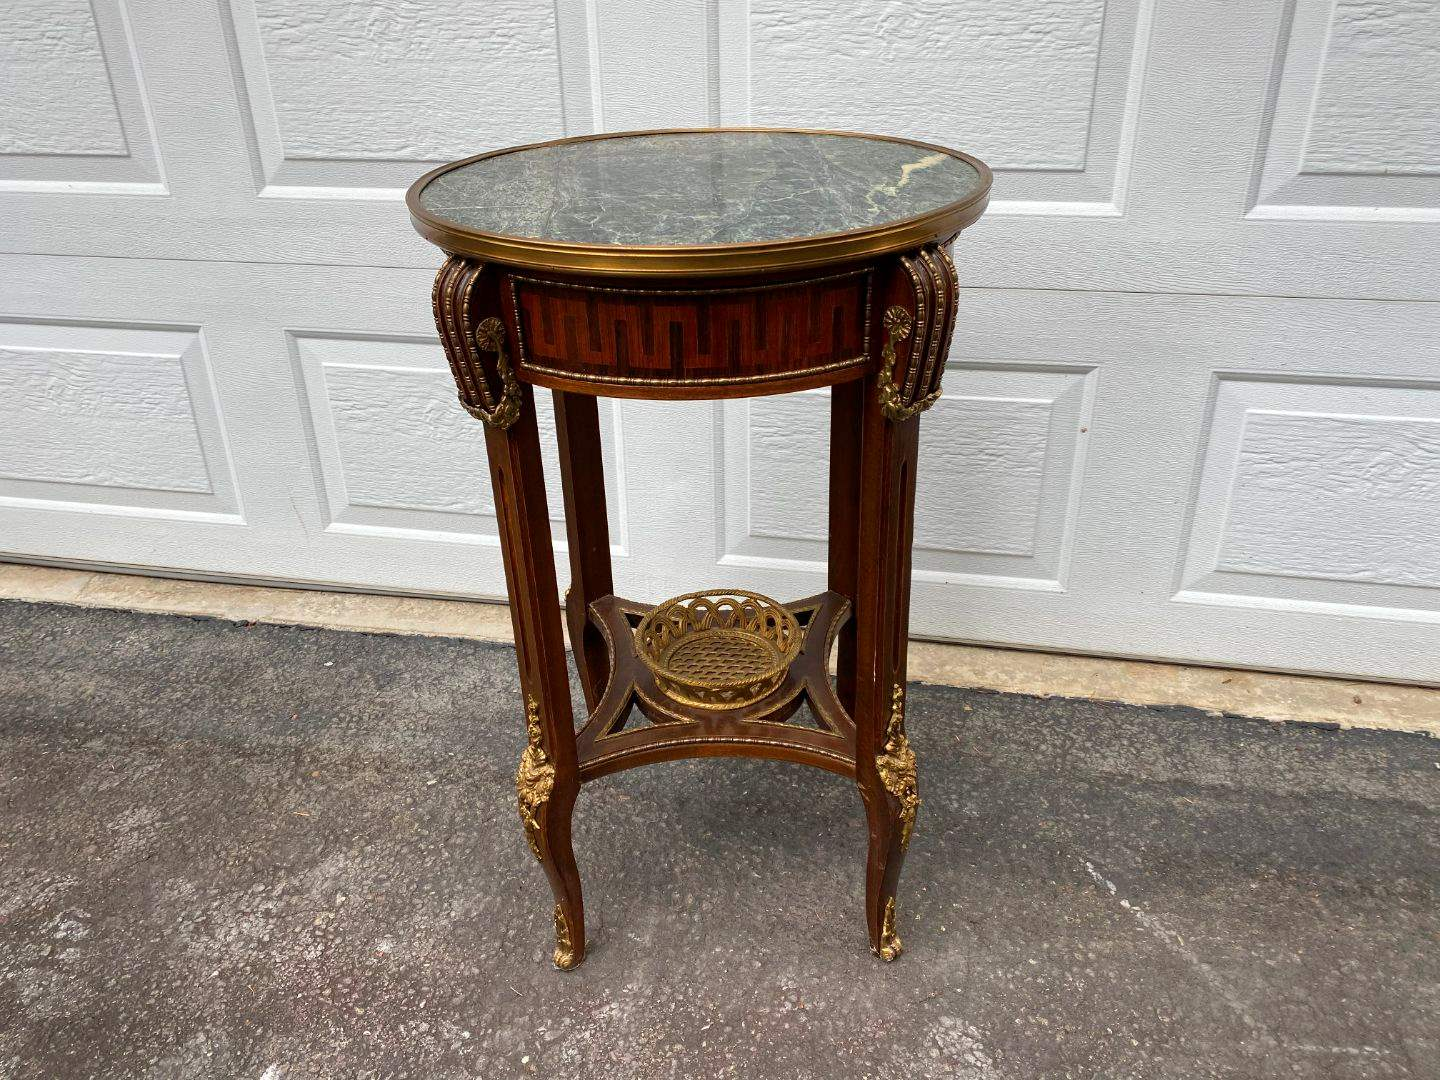 Lot # 307 - Vintage Louis XV Style Marble Top Side Table w/Brass Accents (main image)